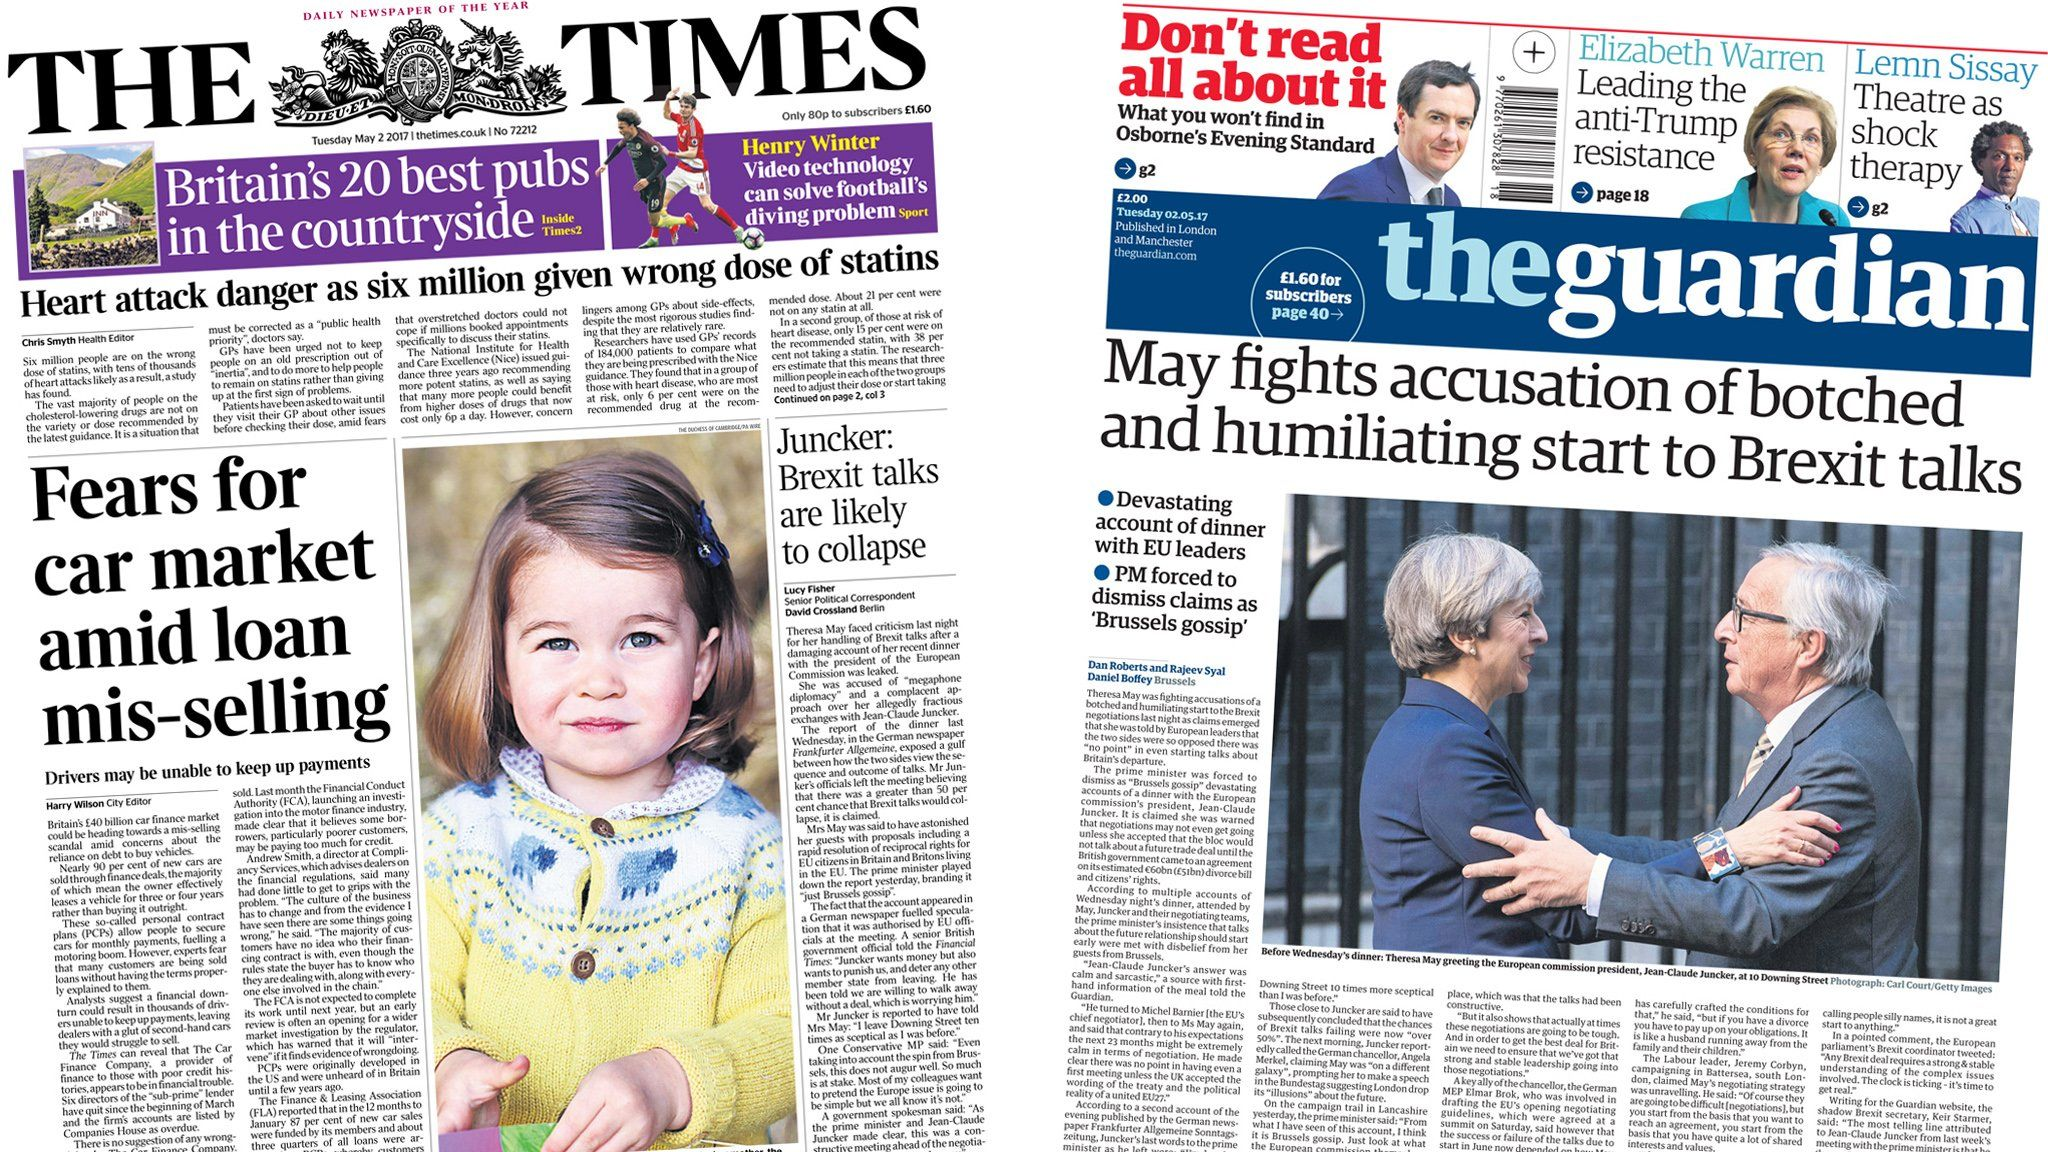 Times/Telegraph front pages